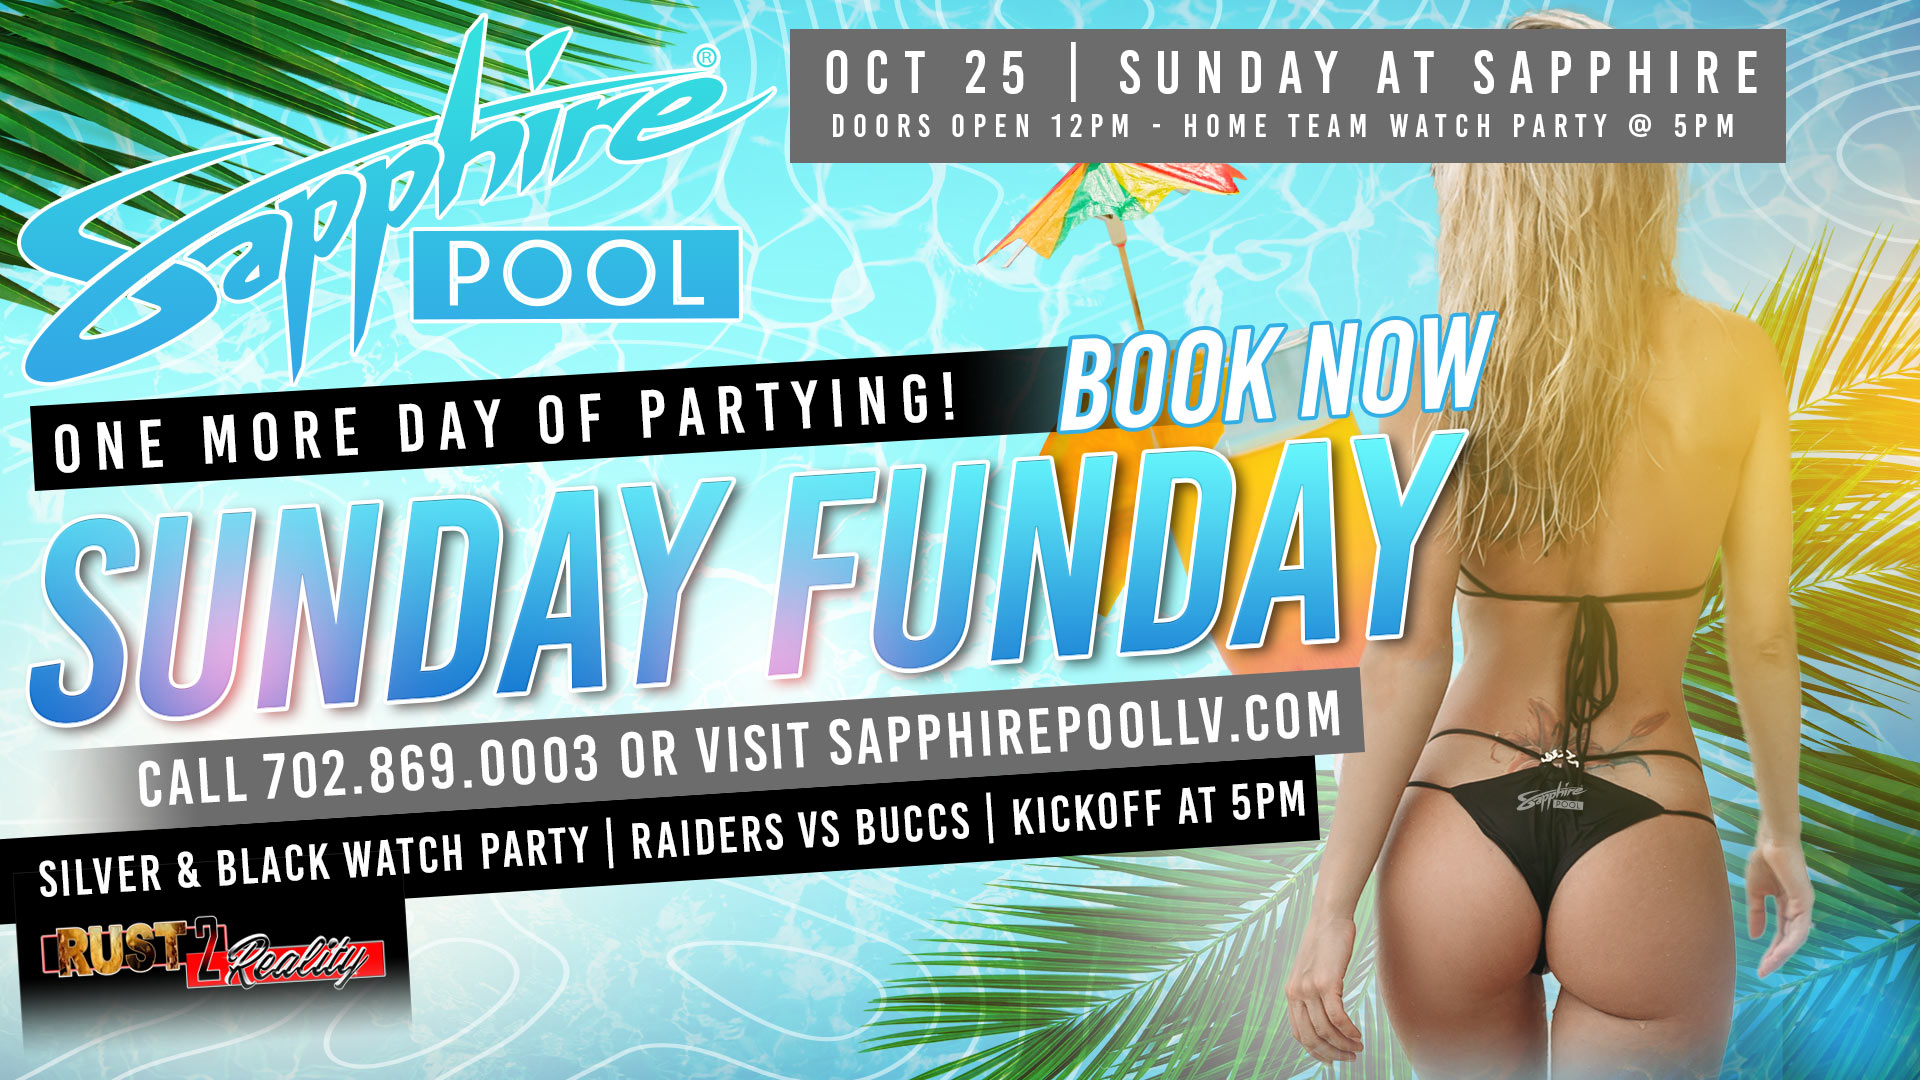 LV Raiders Fan Club Watch Party at Sapphire Pool